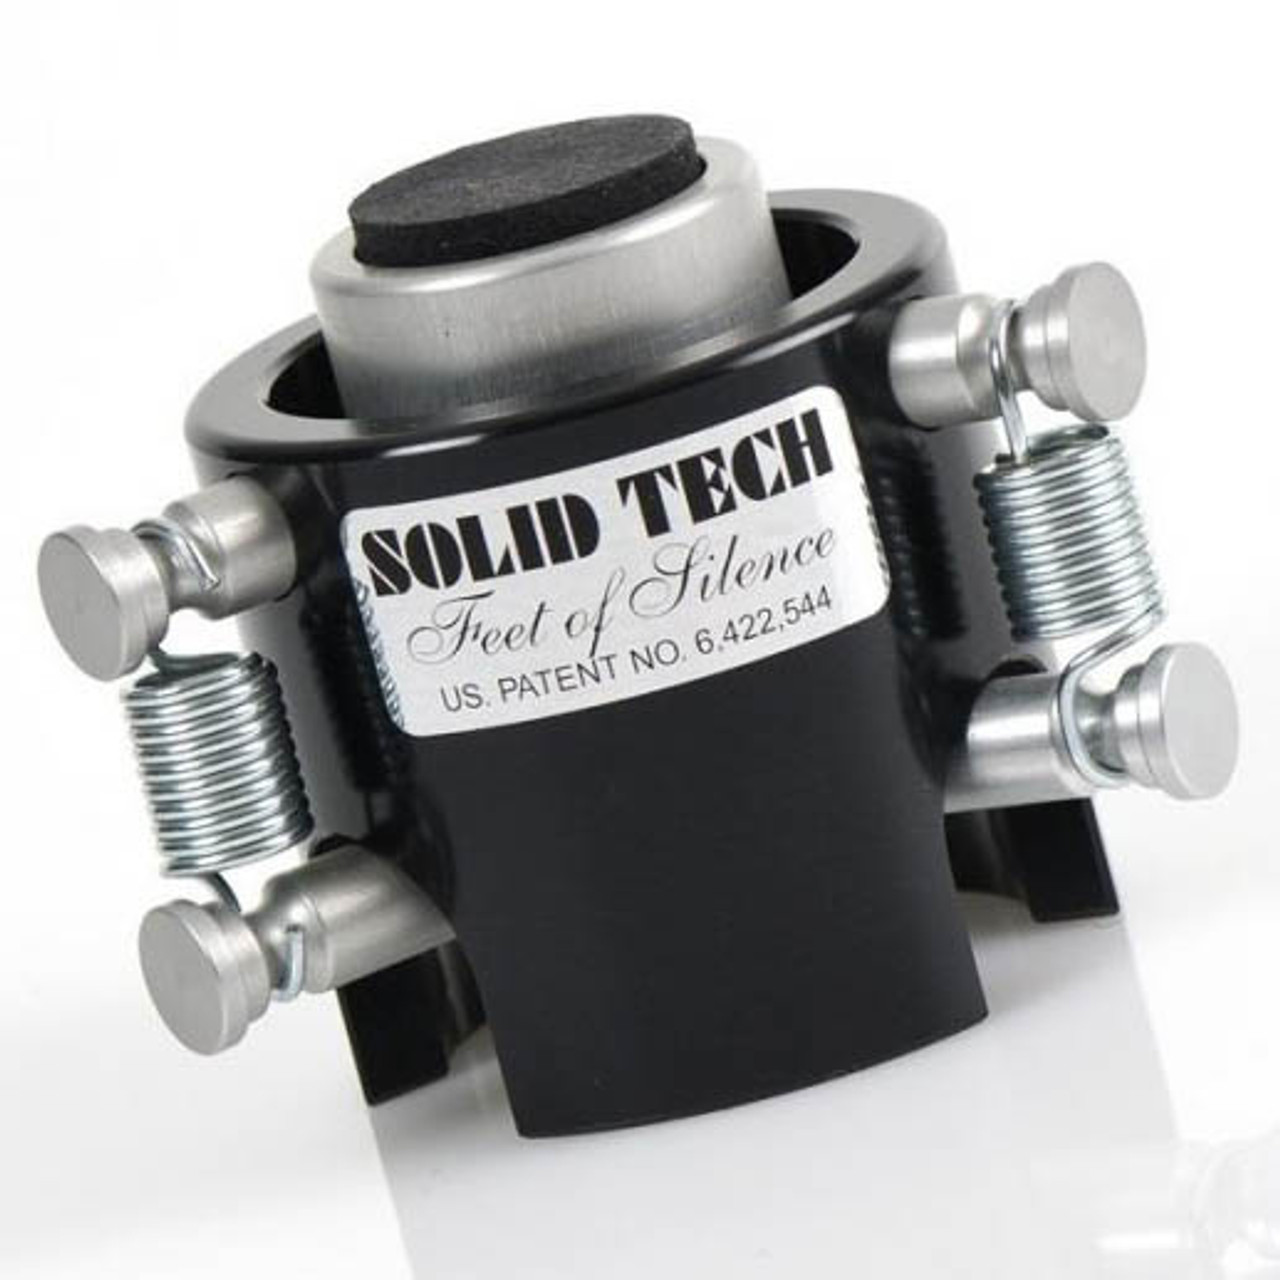 Solid Tech Feet of Silence Springs